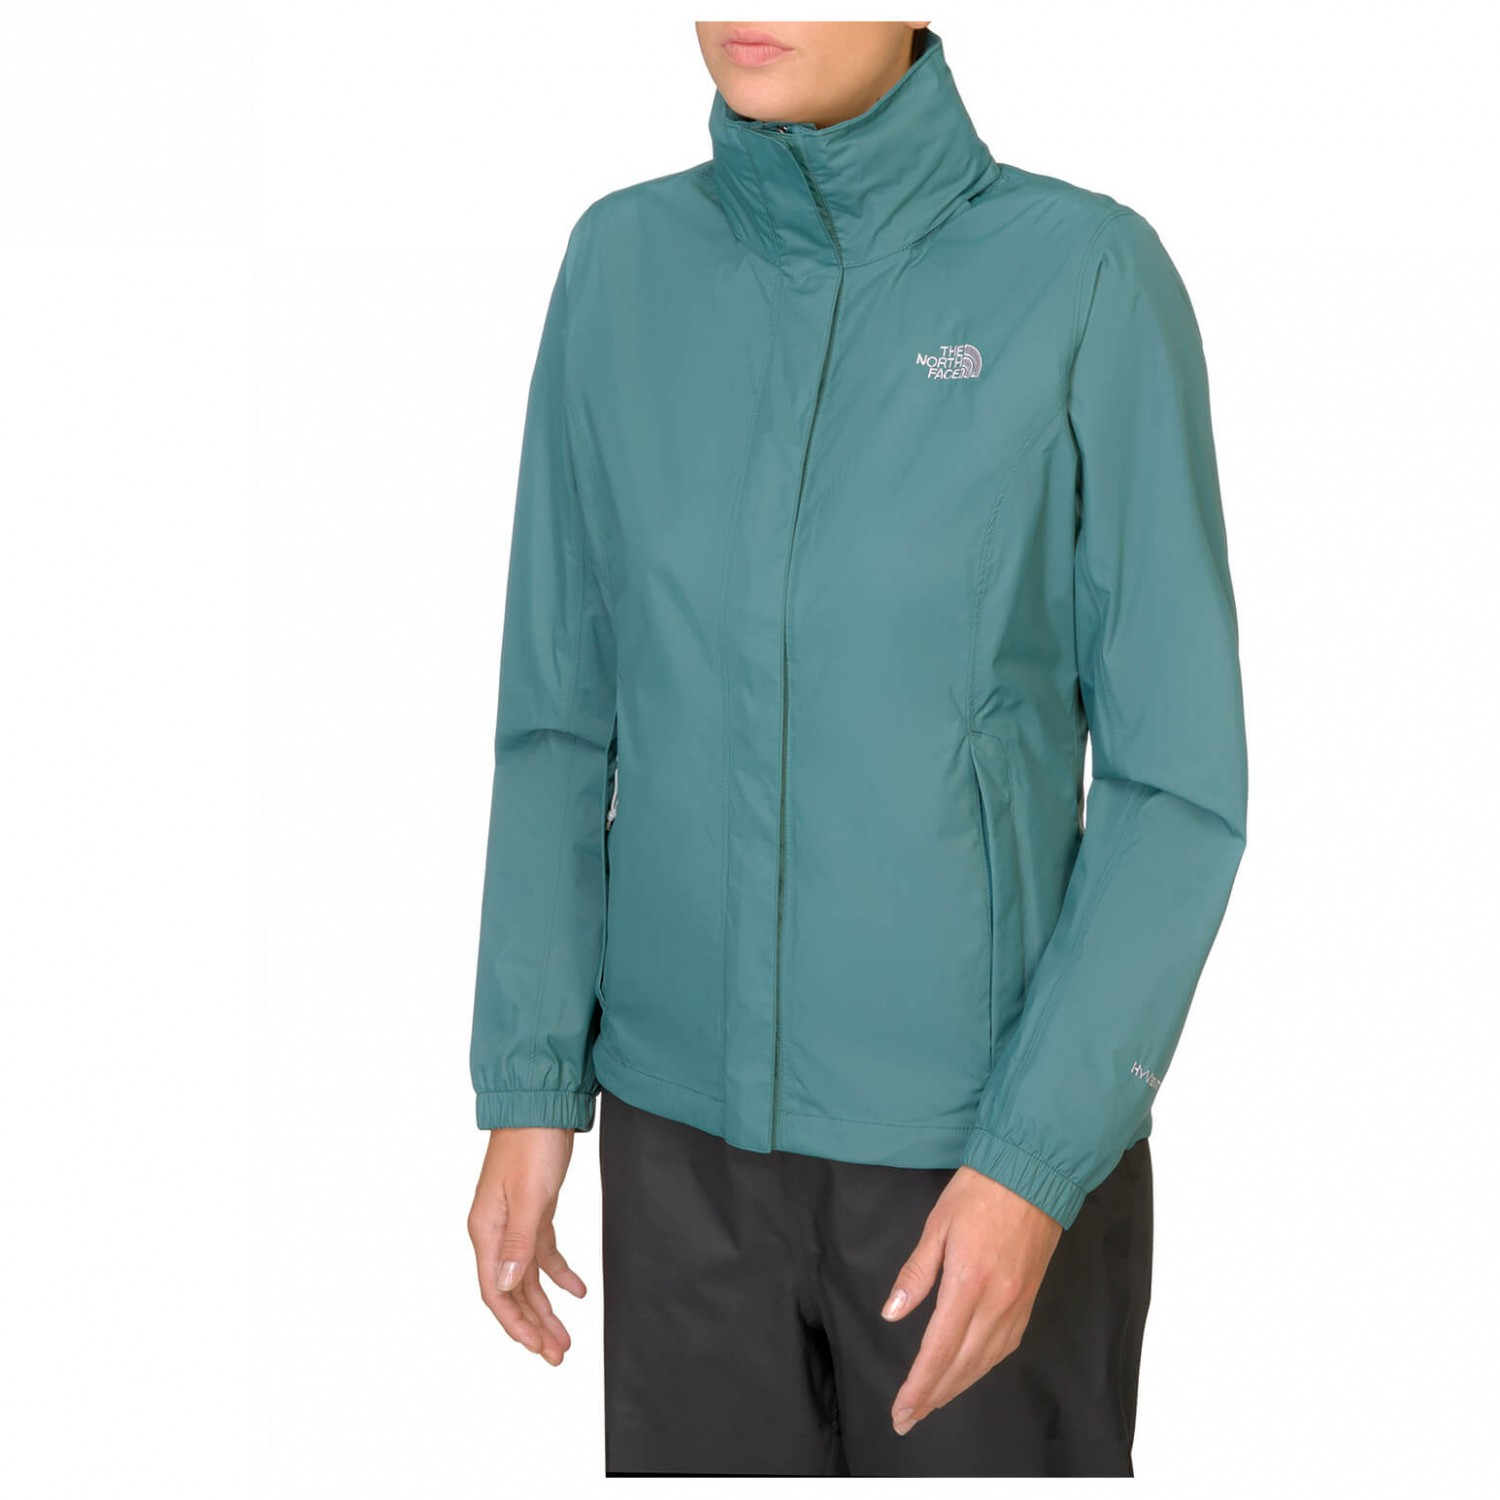 reputable site 7ca63 bf70d The North Face - Women's Resolve Jacket - Regenjacke